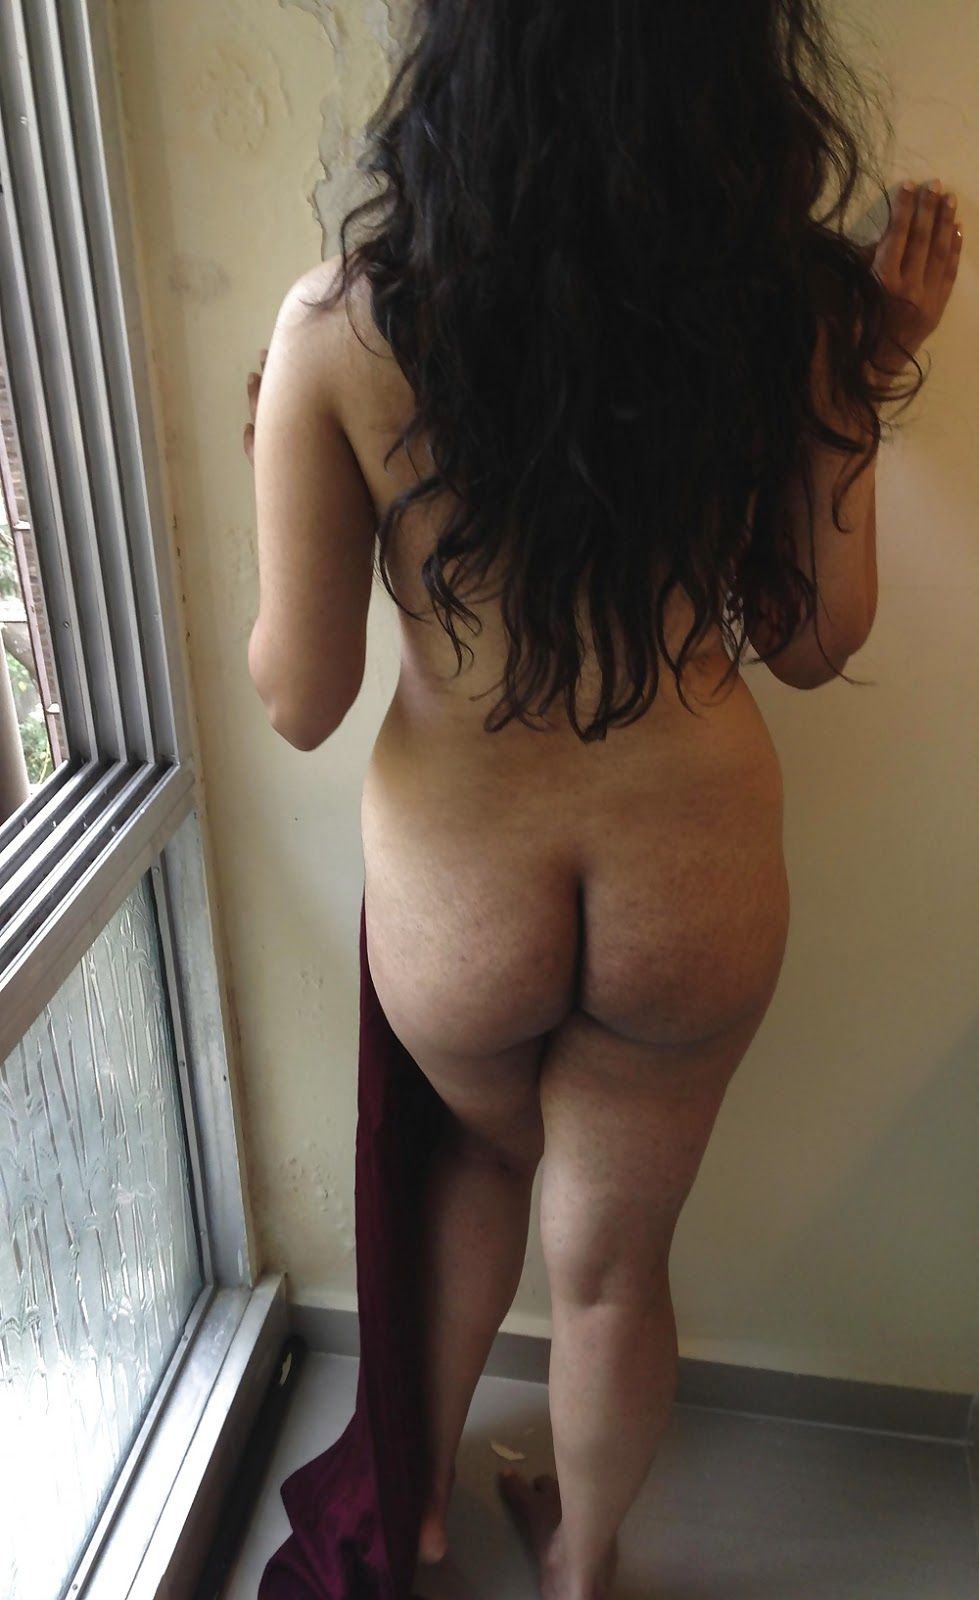 Teen With Fat Ass 21